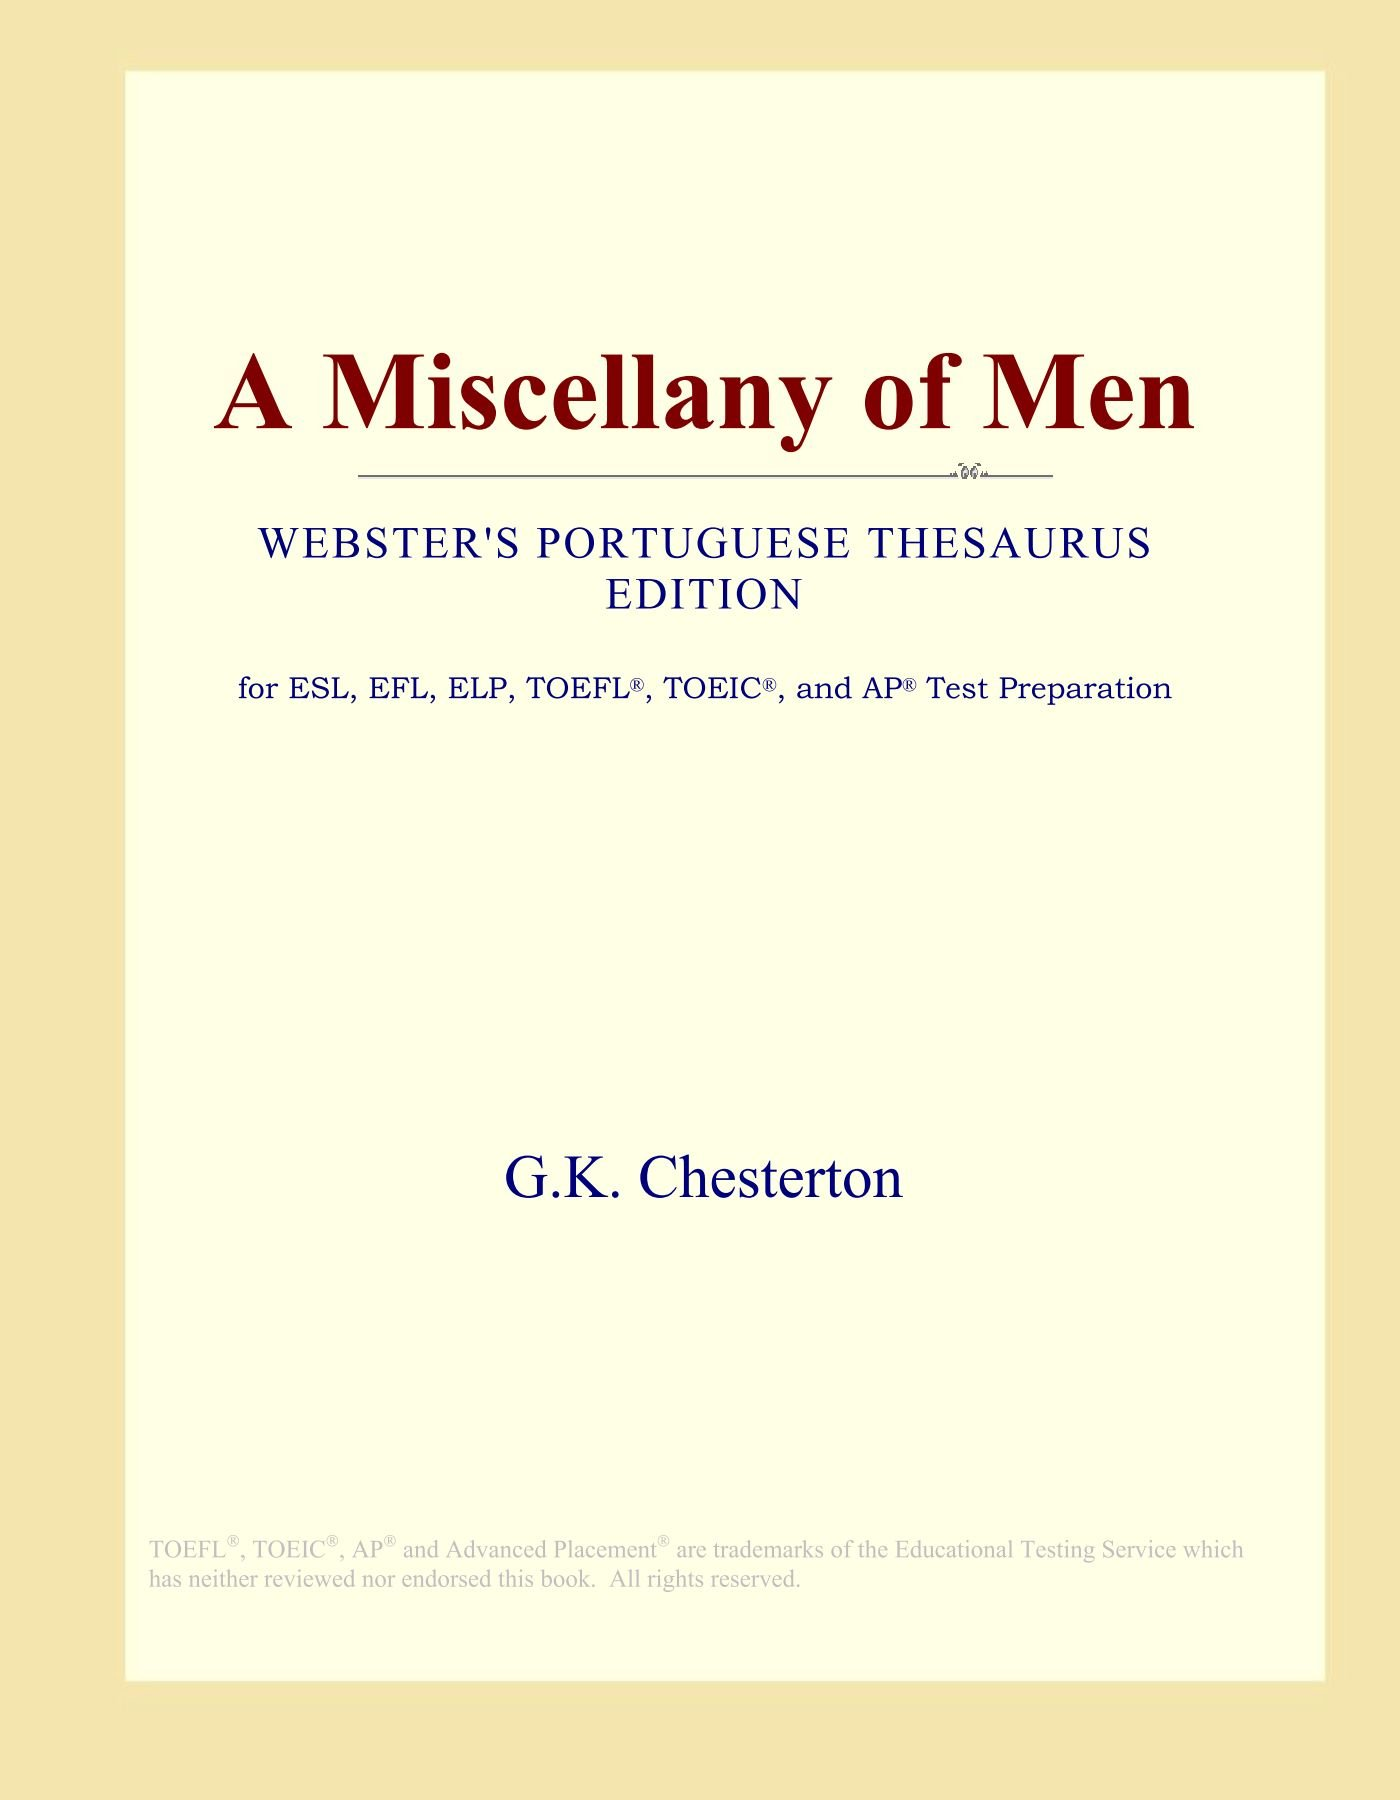 Download A Miscellany of Men (Webster's Portuguese Thesaurus Edition) PDF